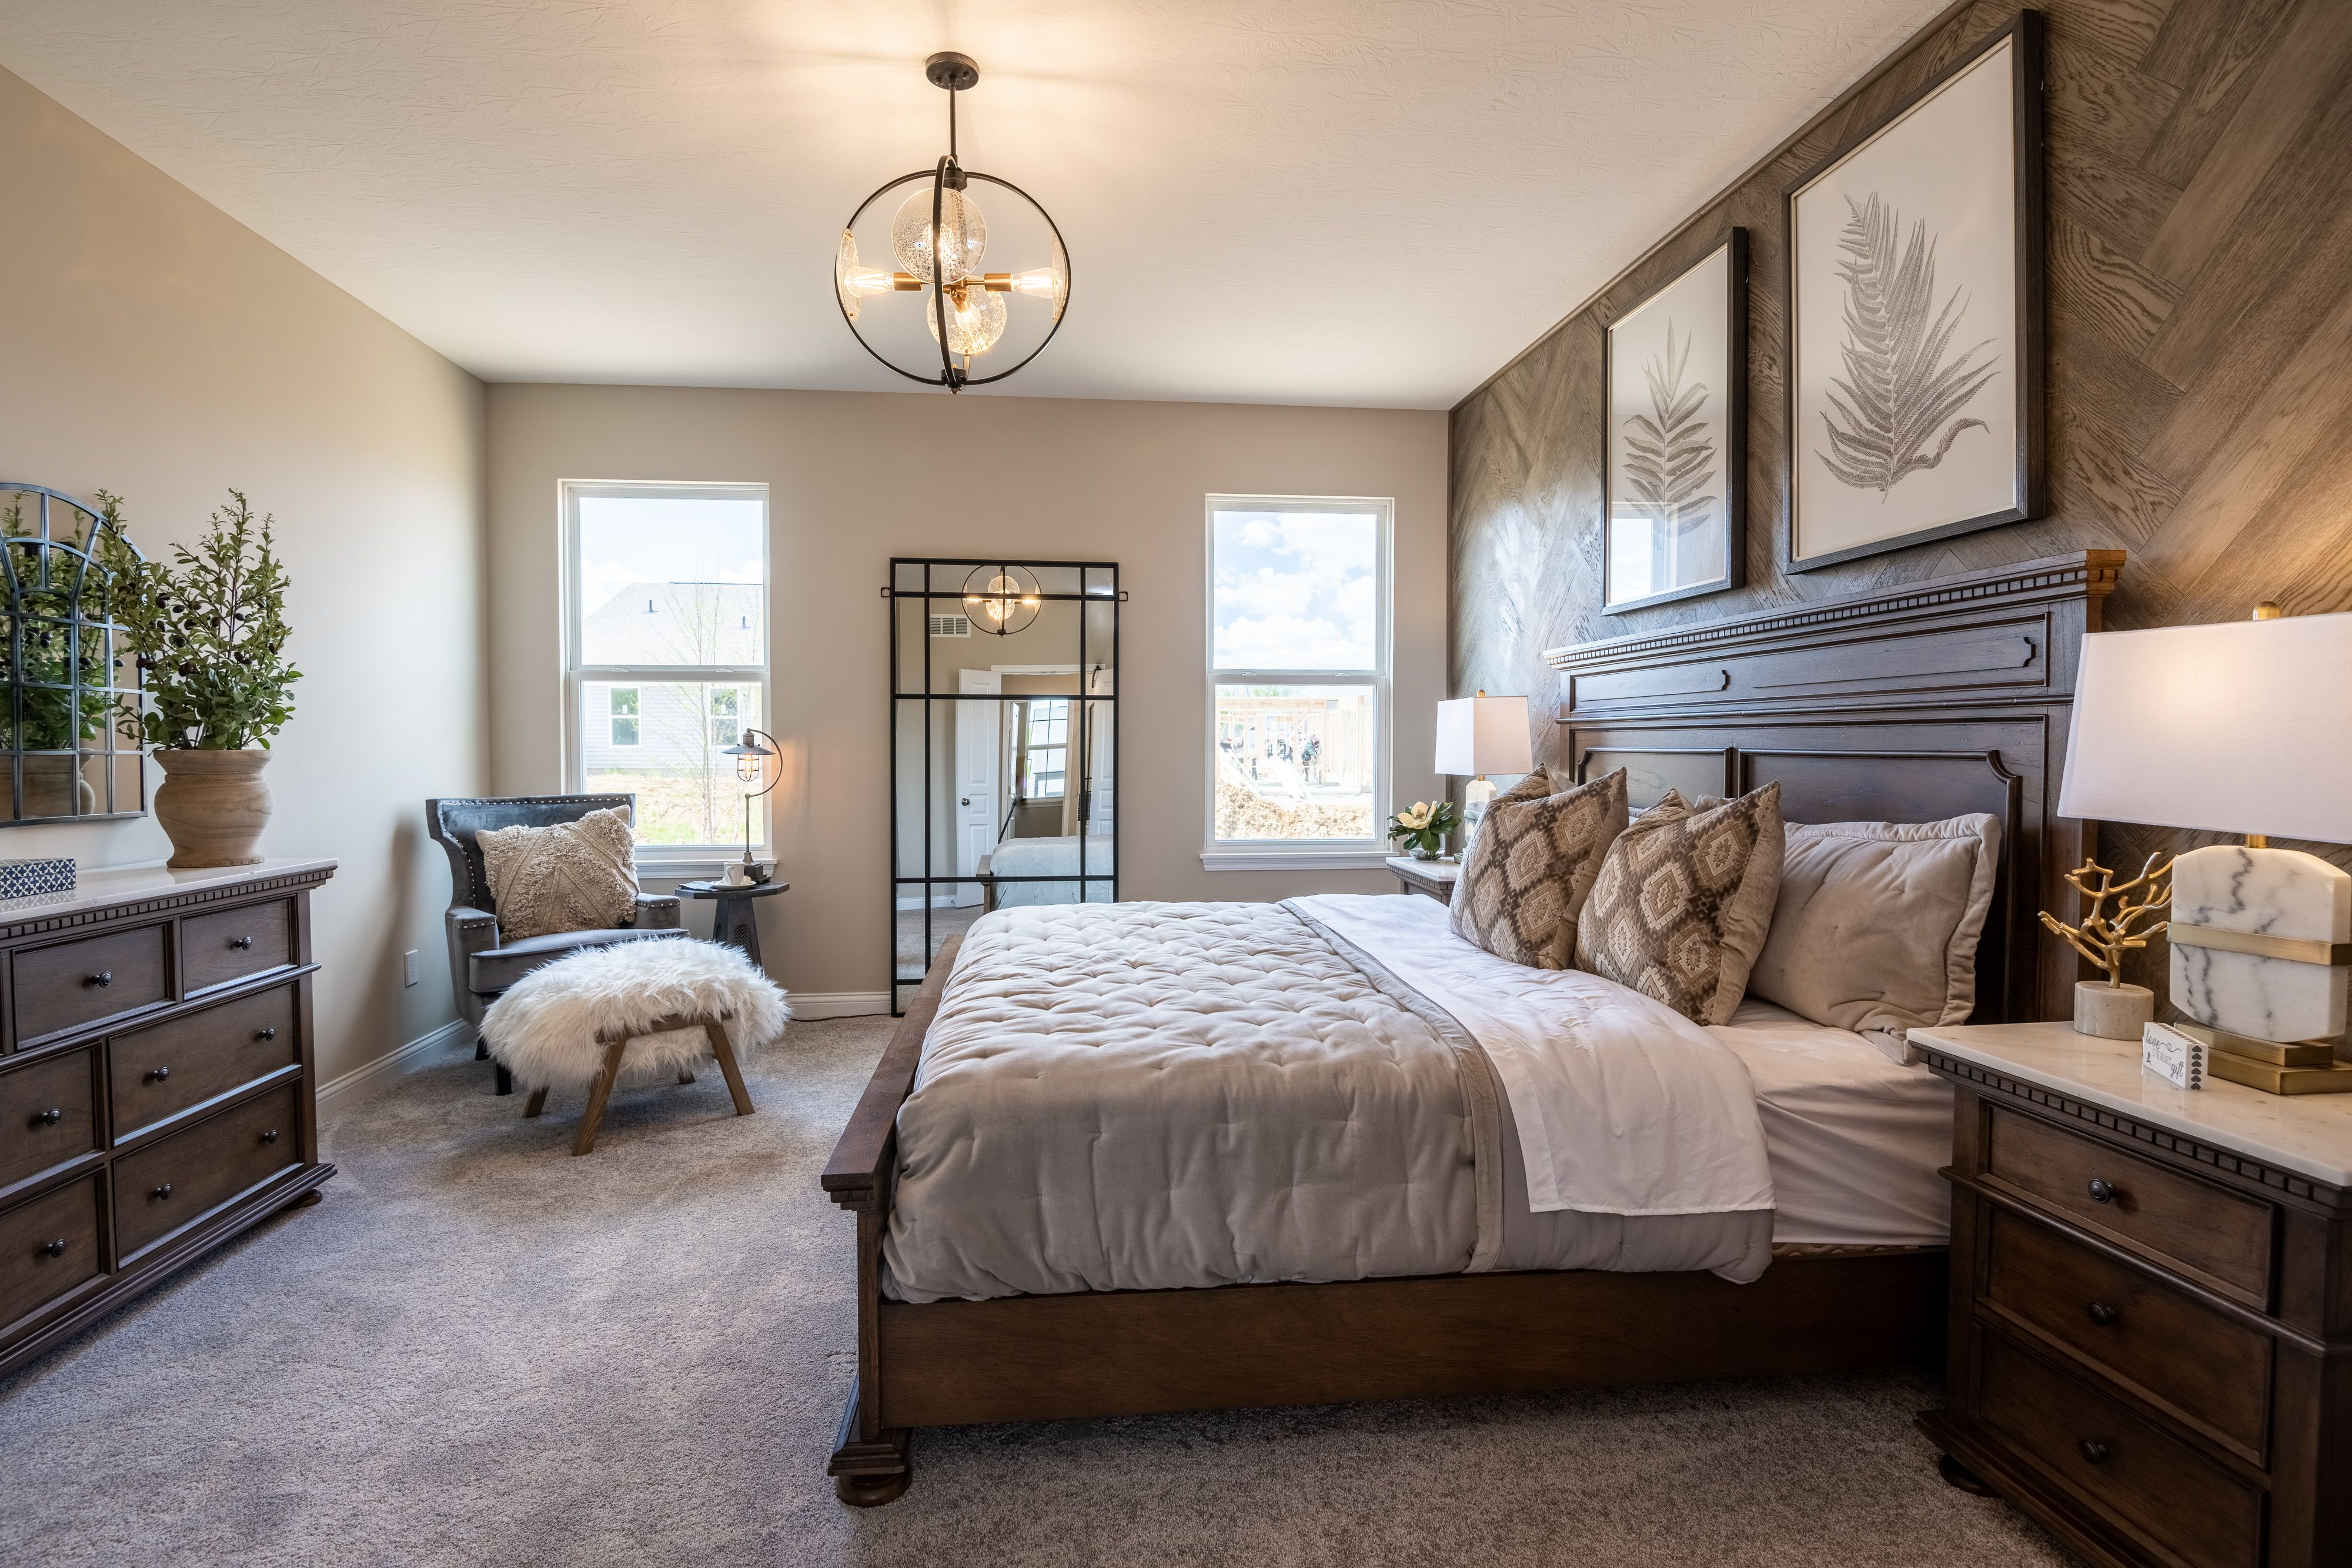 Bedroom featured in the Keaton By Fischer Homes  in Cincinnati, KY